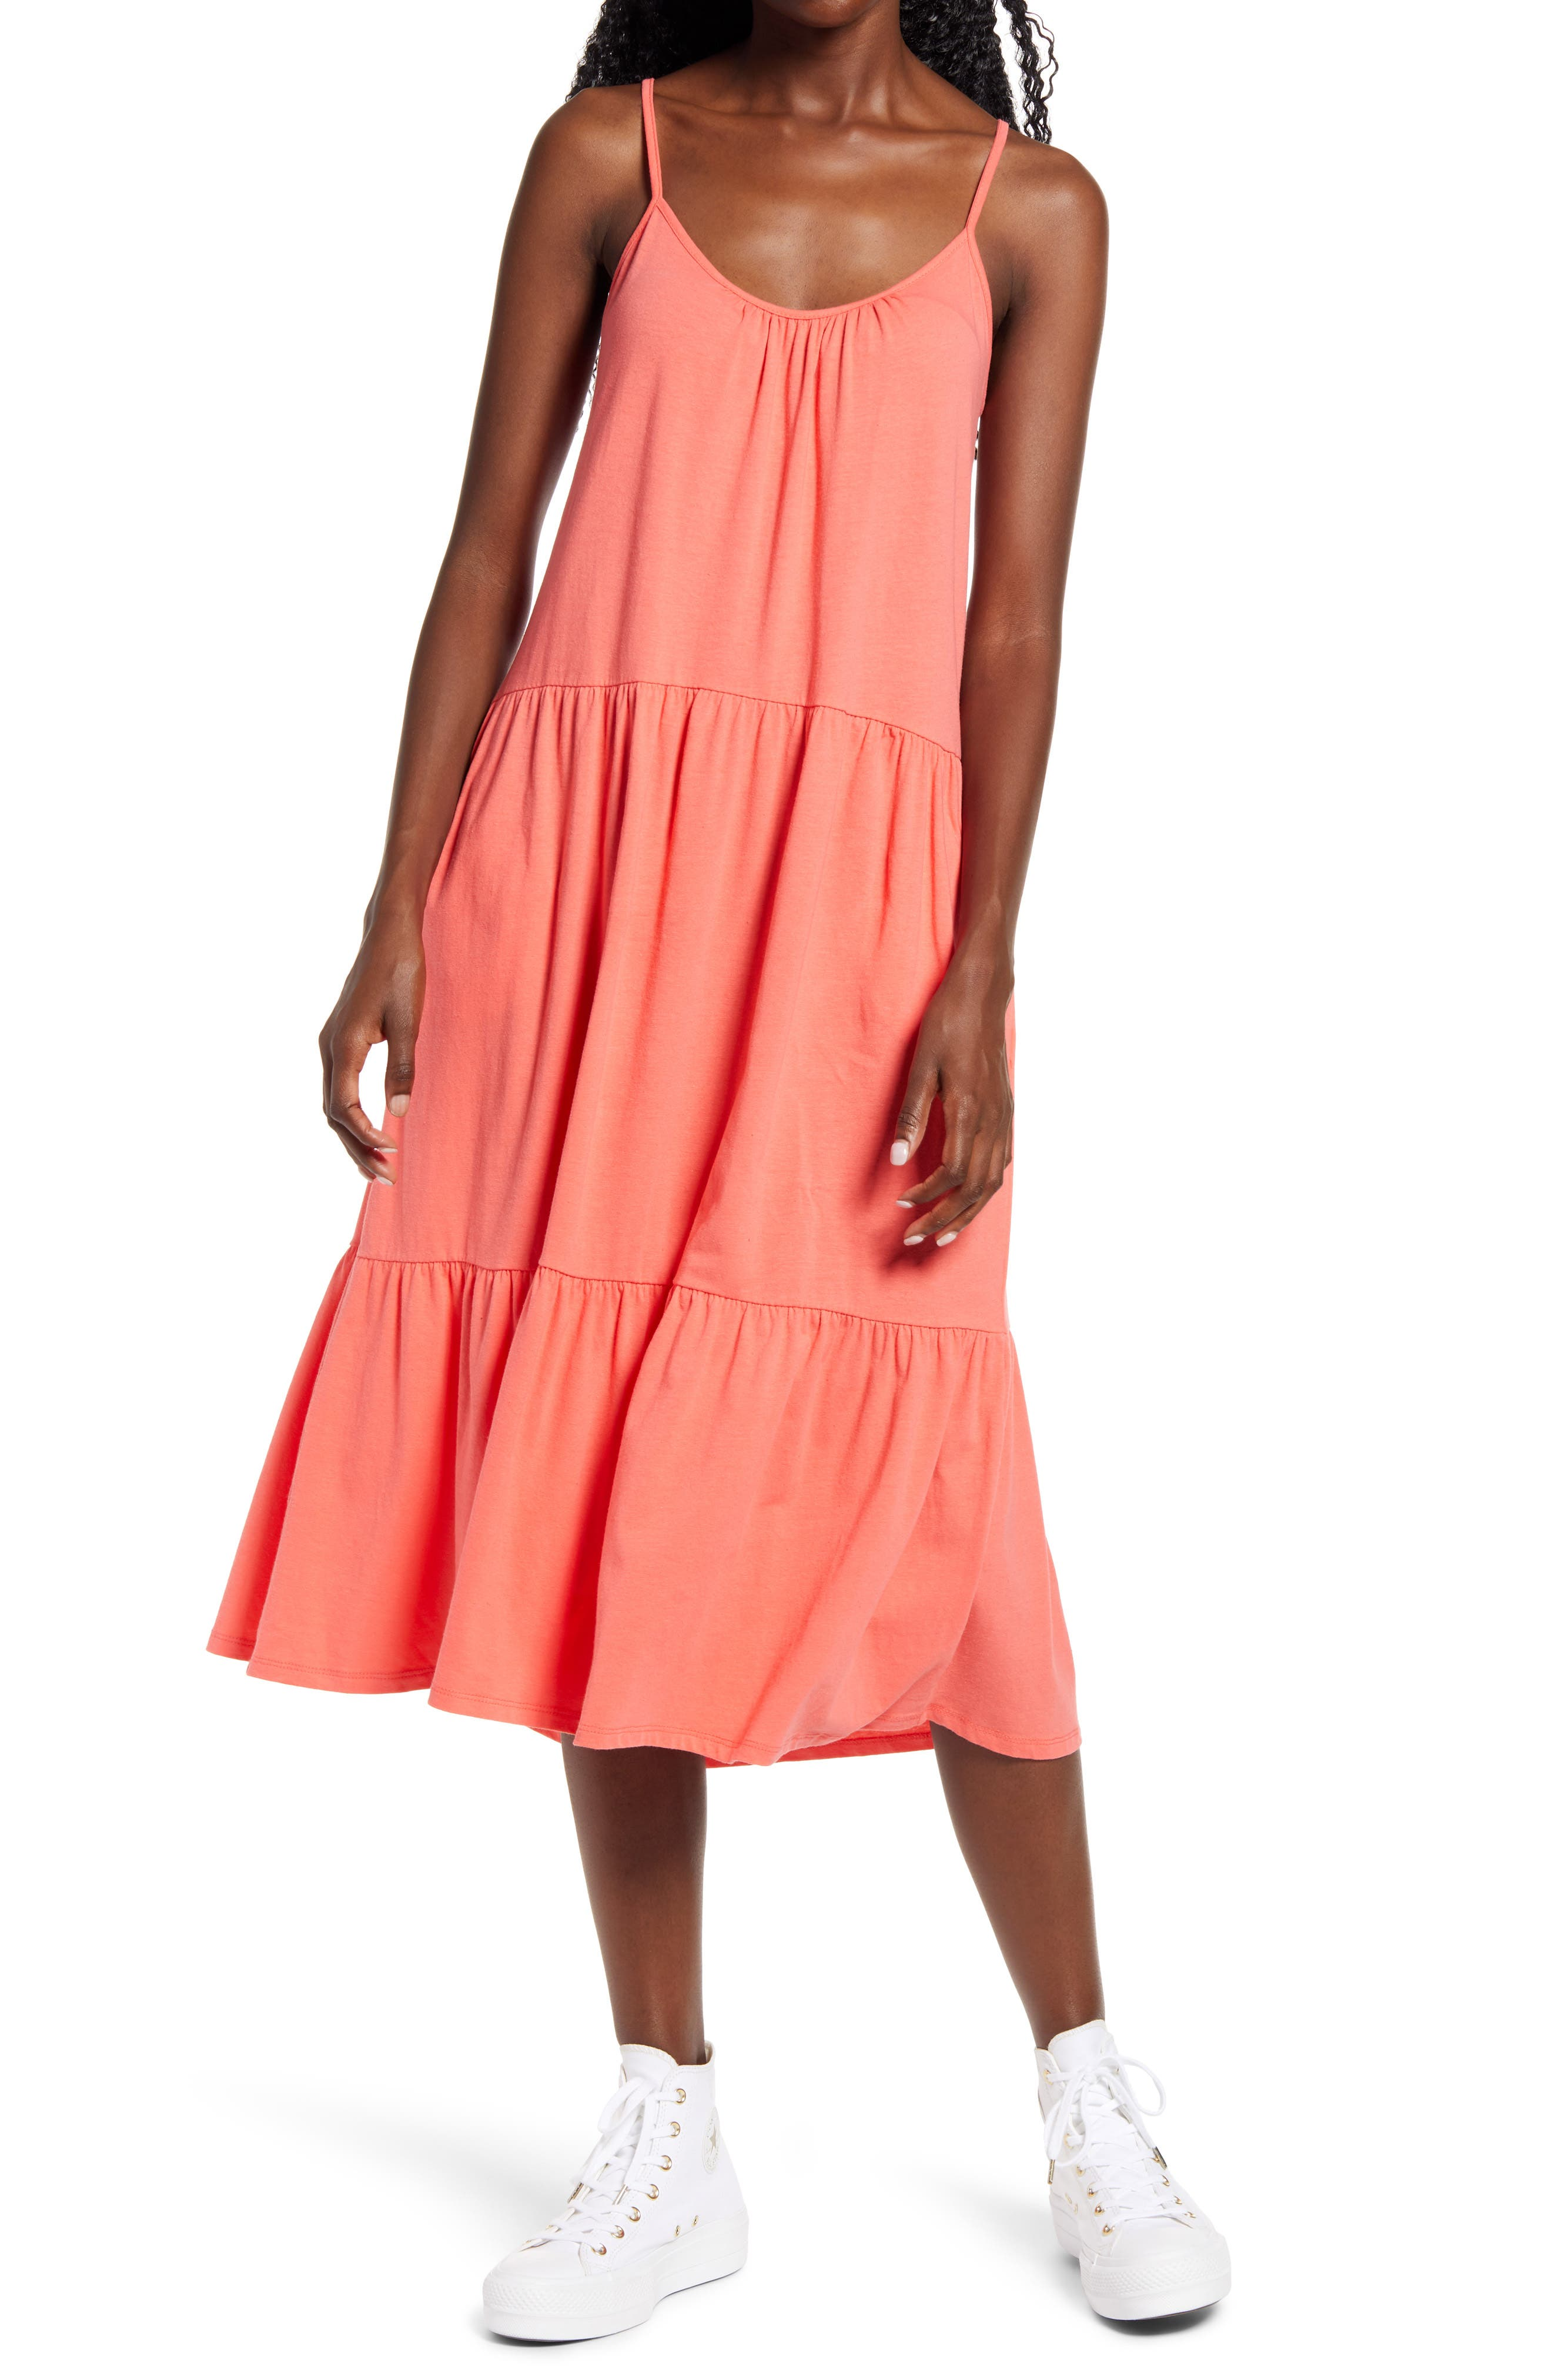 A gathered neckline and tiers give lovely flow to this soft cotton jersey dress that shifts from day to night with a simple switch of accessories. The adjustable straps ensure a perfect fit. Style Name: All In Favor Tiered Jersey Dress. Style Number: 6086248 1. Available in stores.